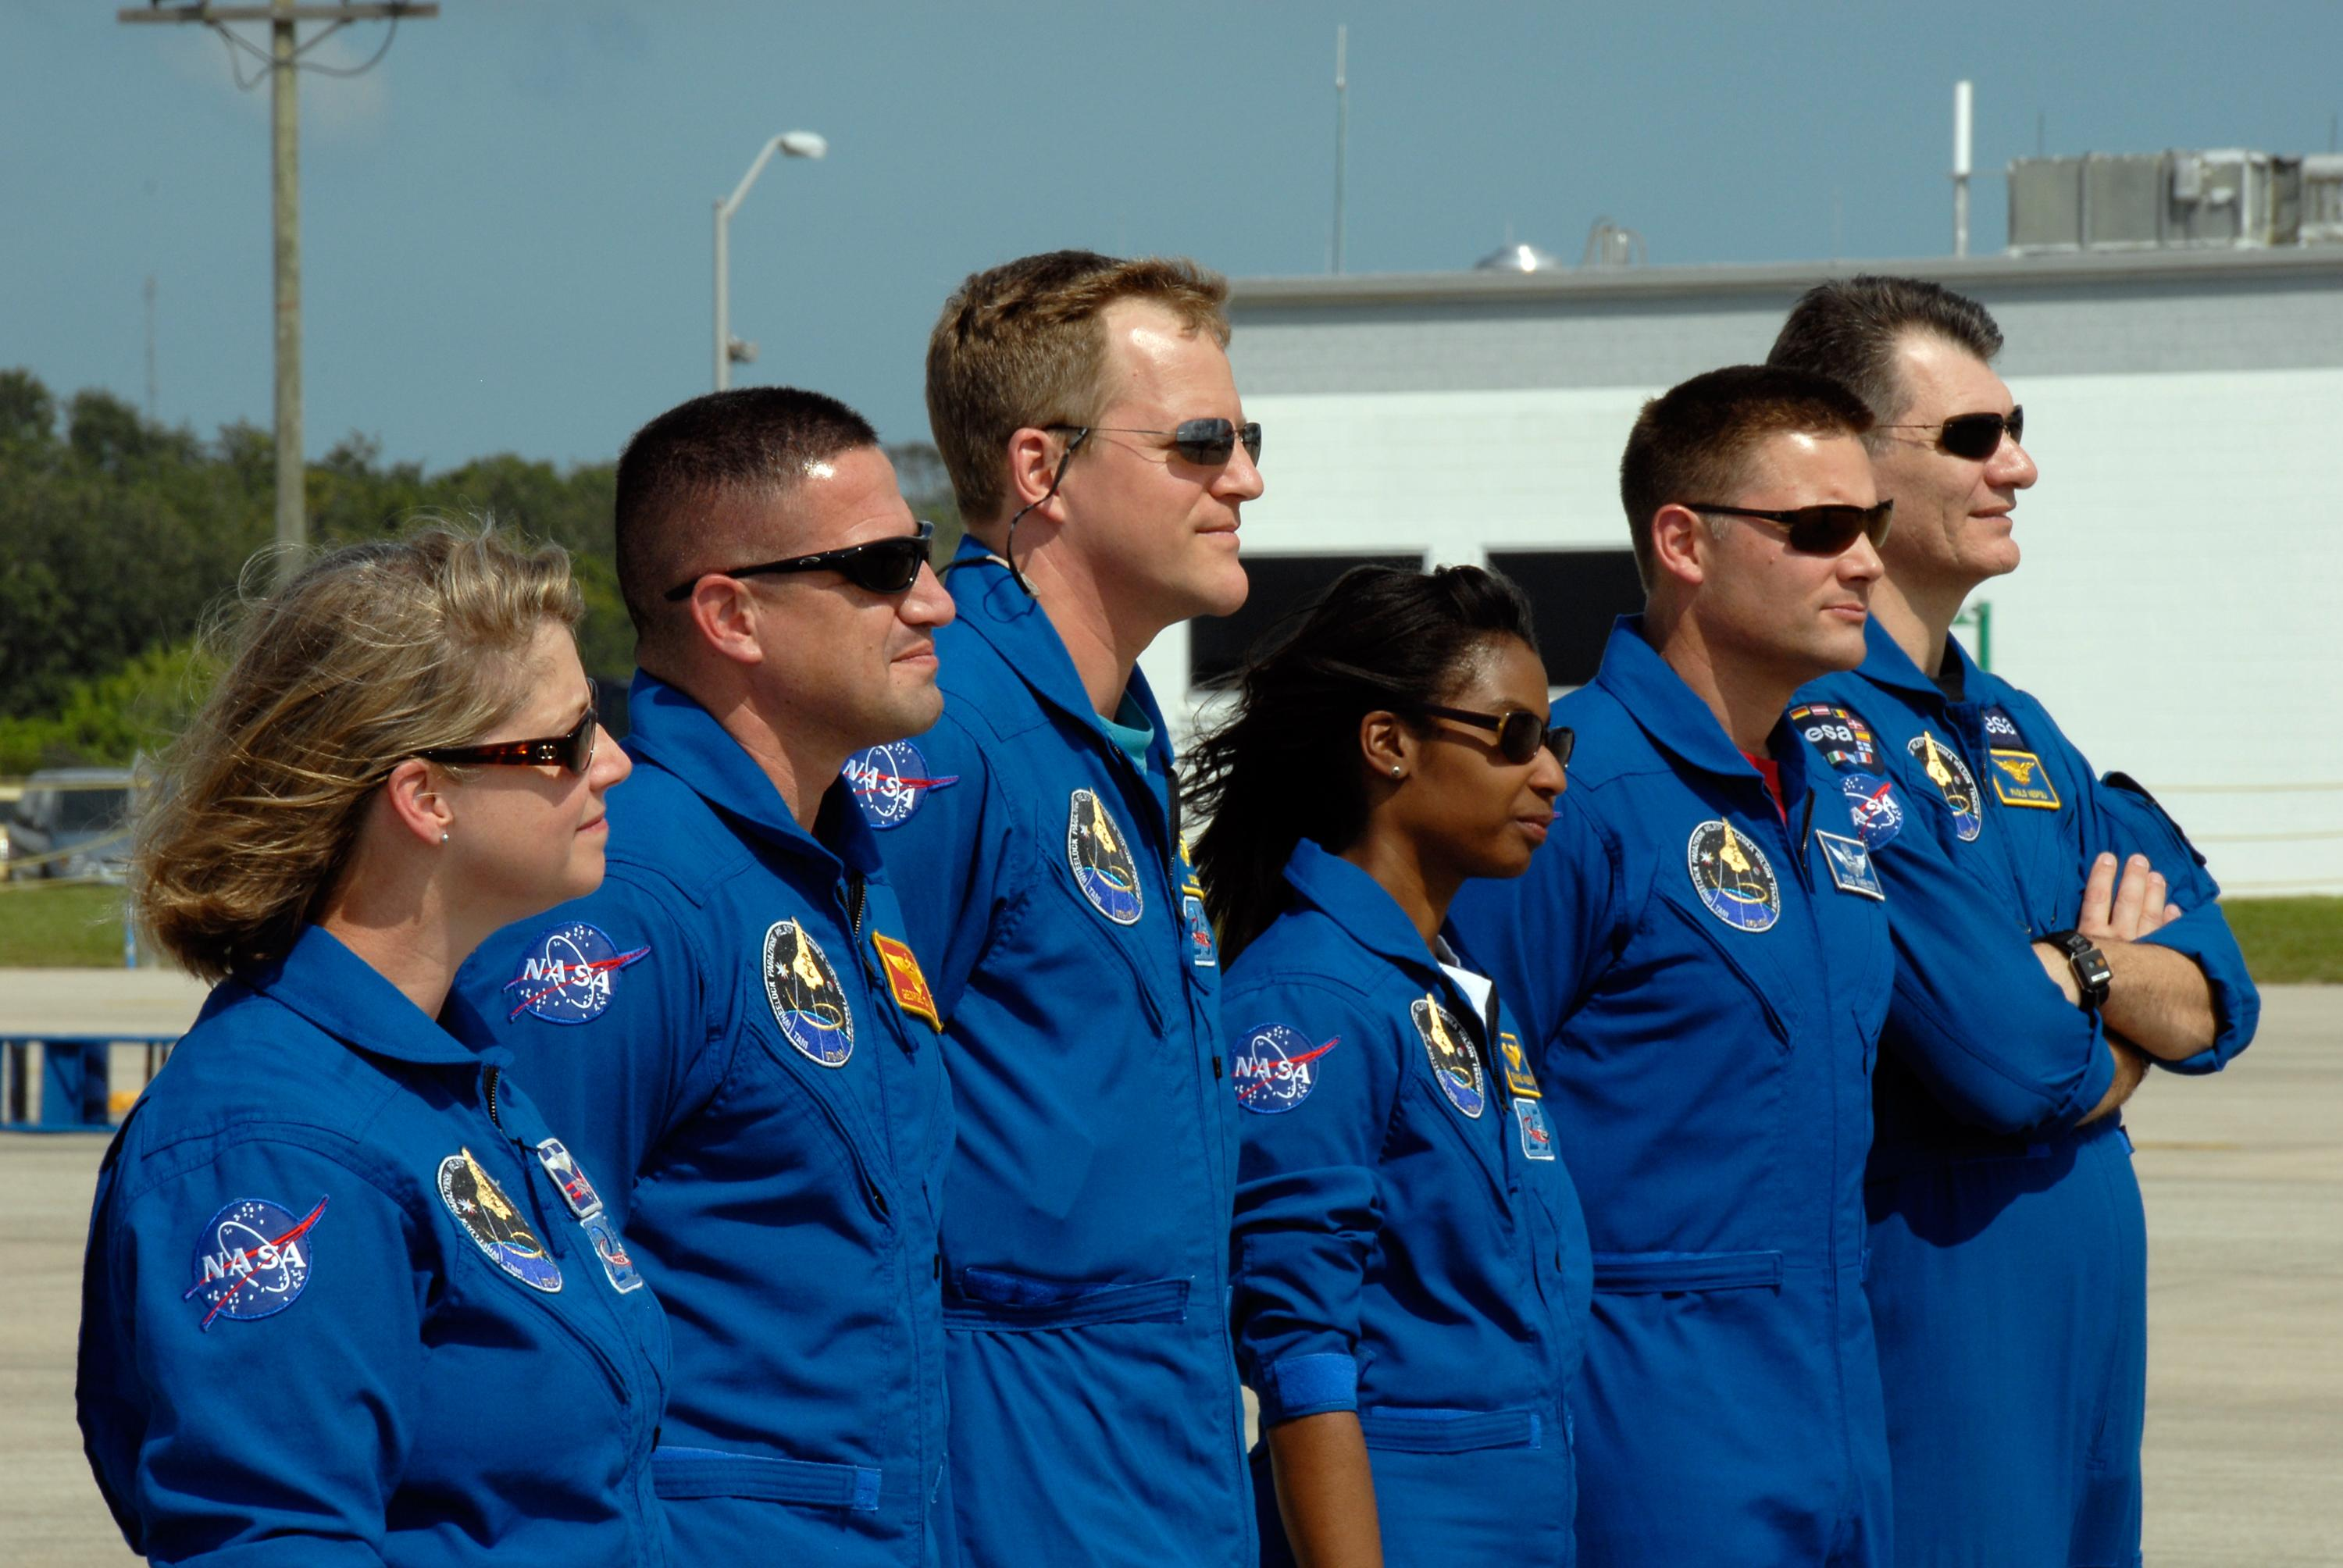 Space in Images - 2007 - 10 - STS-120 crew arrive at ... | 3000 x 2008 jpeg 465kB